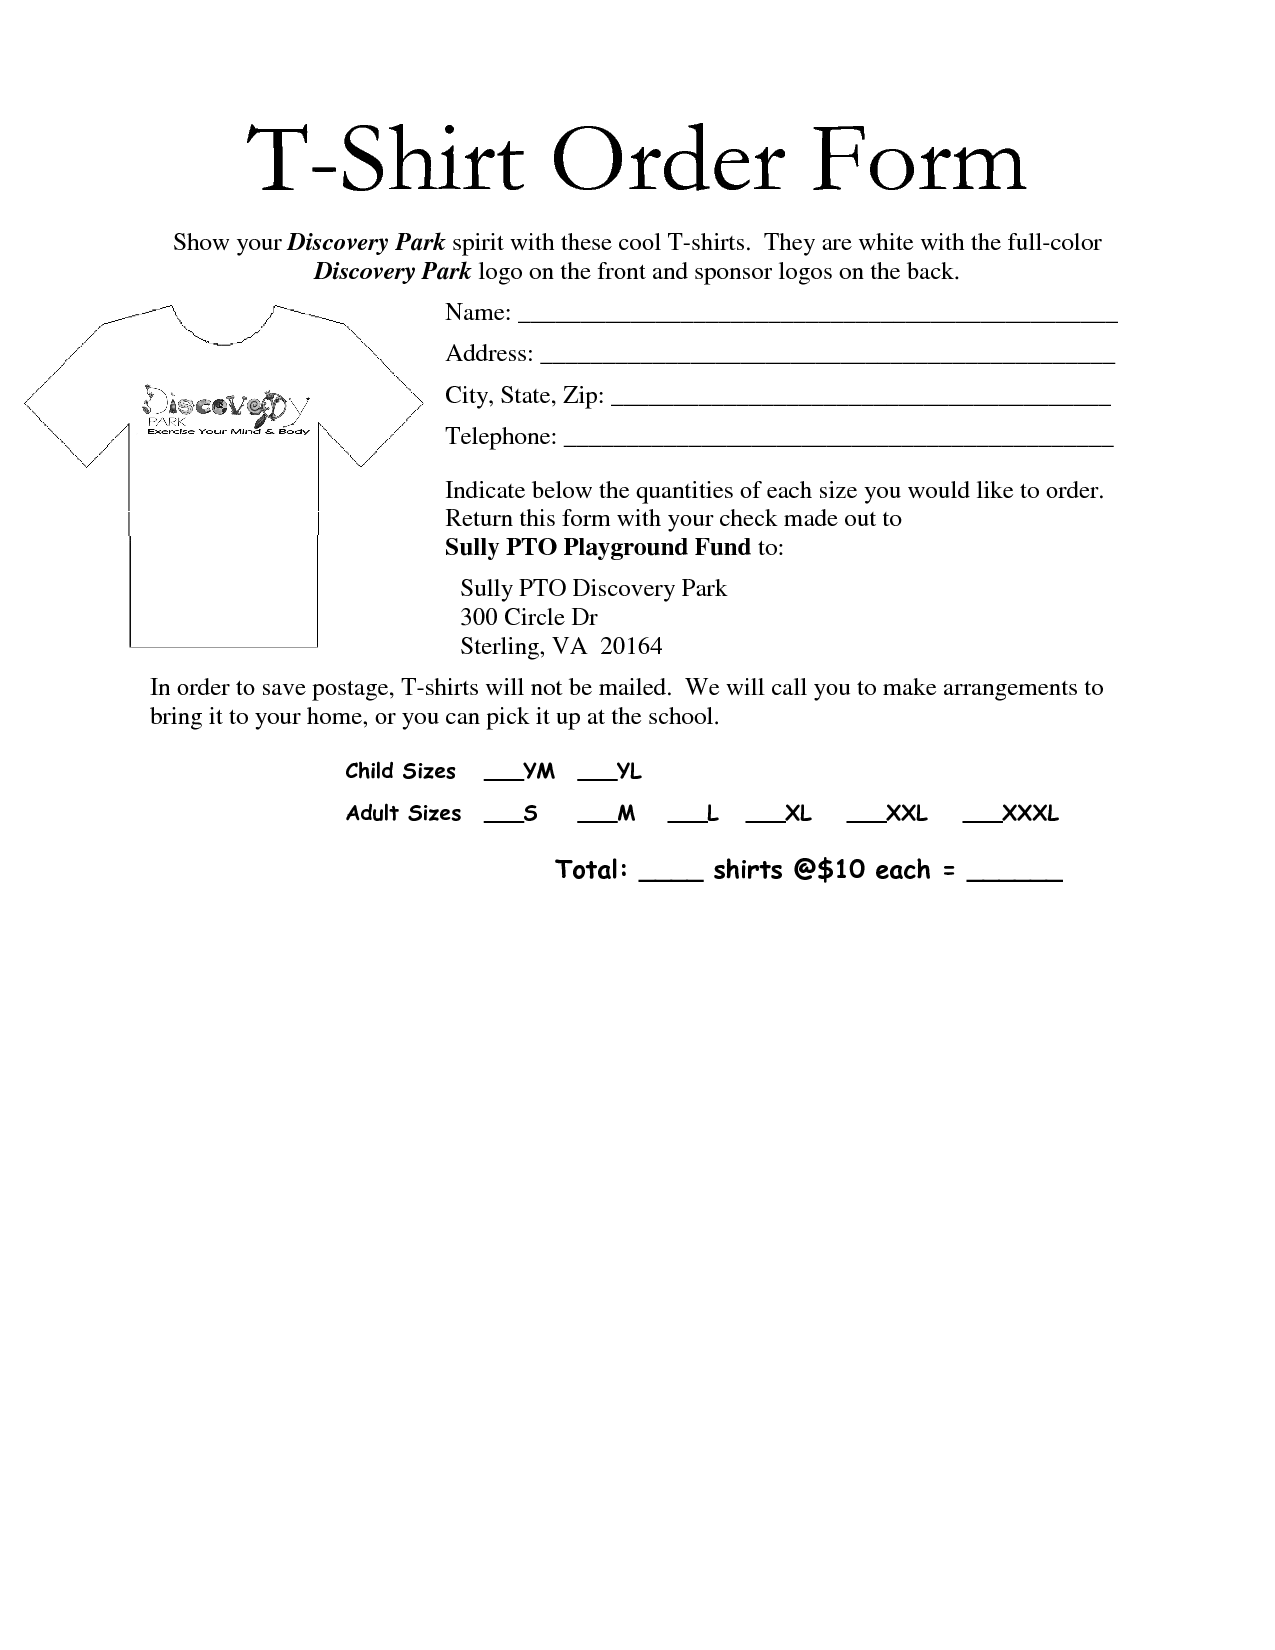 35 Awesome T Shirt Order Form Template Free Images